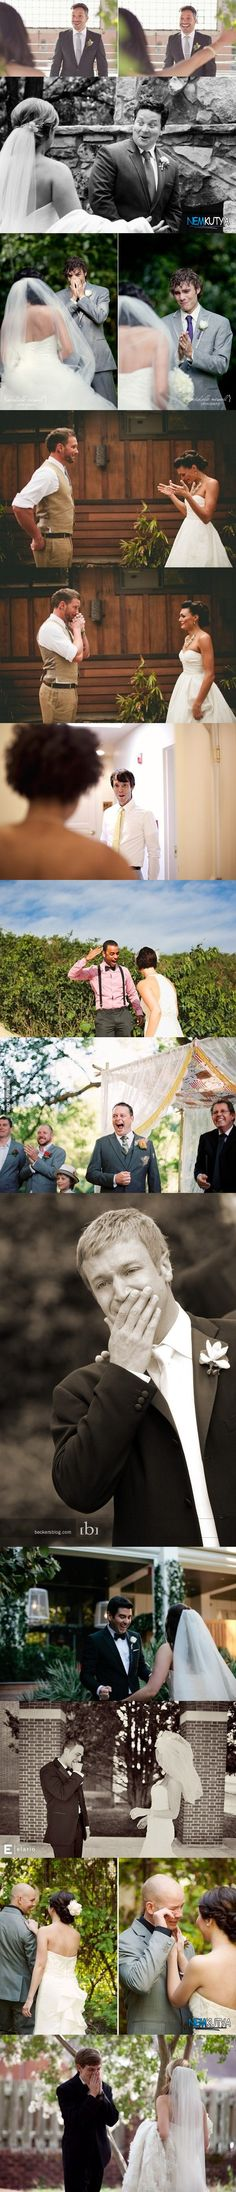 Grooms reactions on wifes wedding dresses.